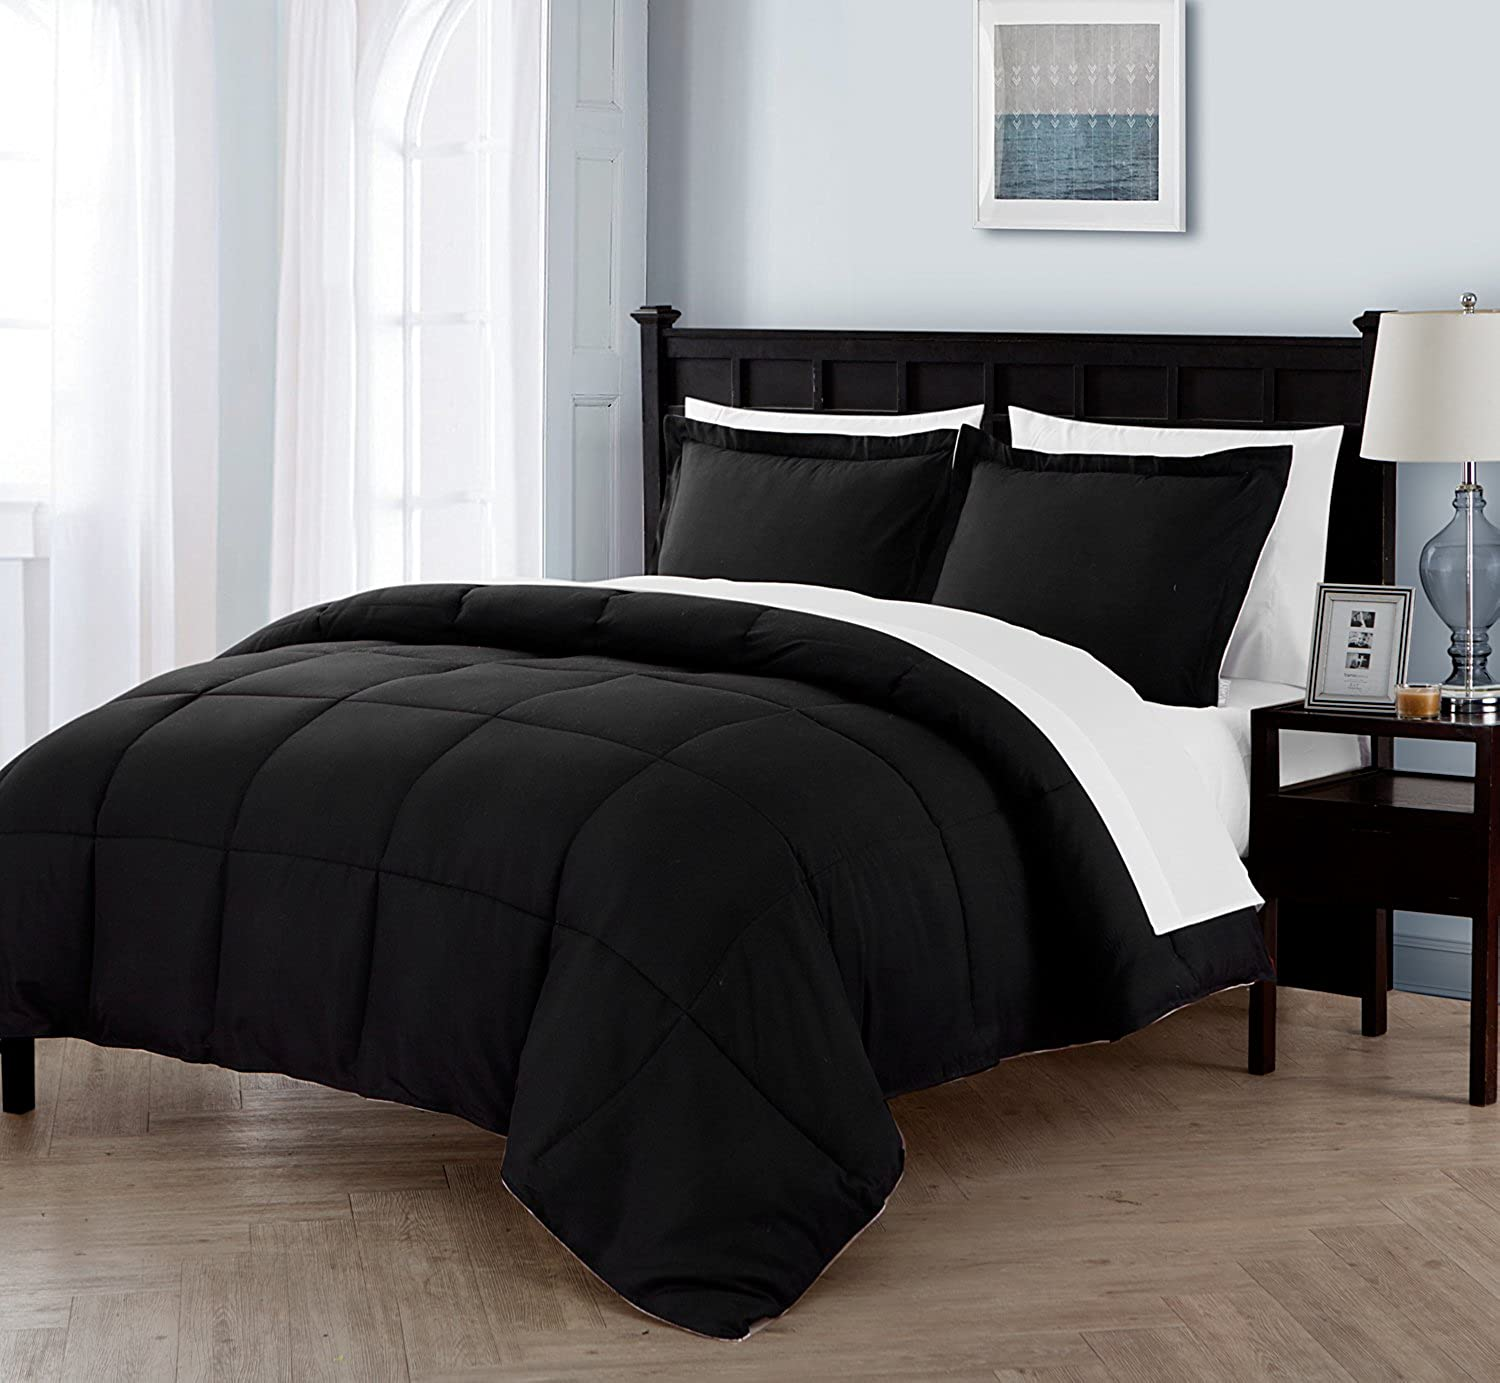 VCNY Home Twin XL Size BED-IN-A-BAG Reversible in Black   White Luxurious 5 Pc Set w  Sheets - Lincoln